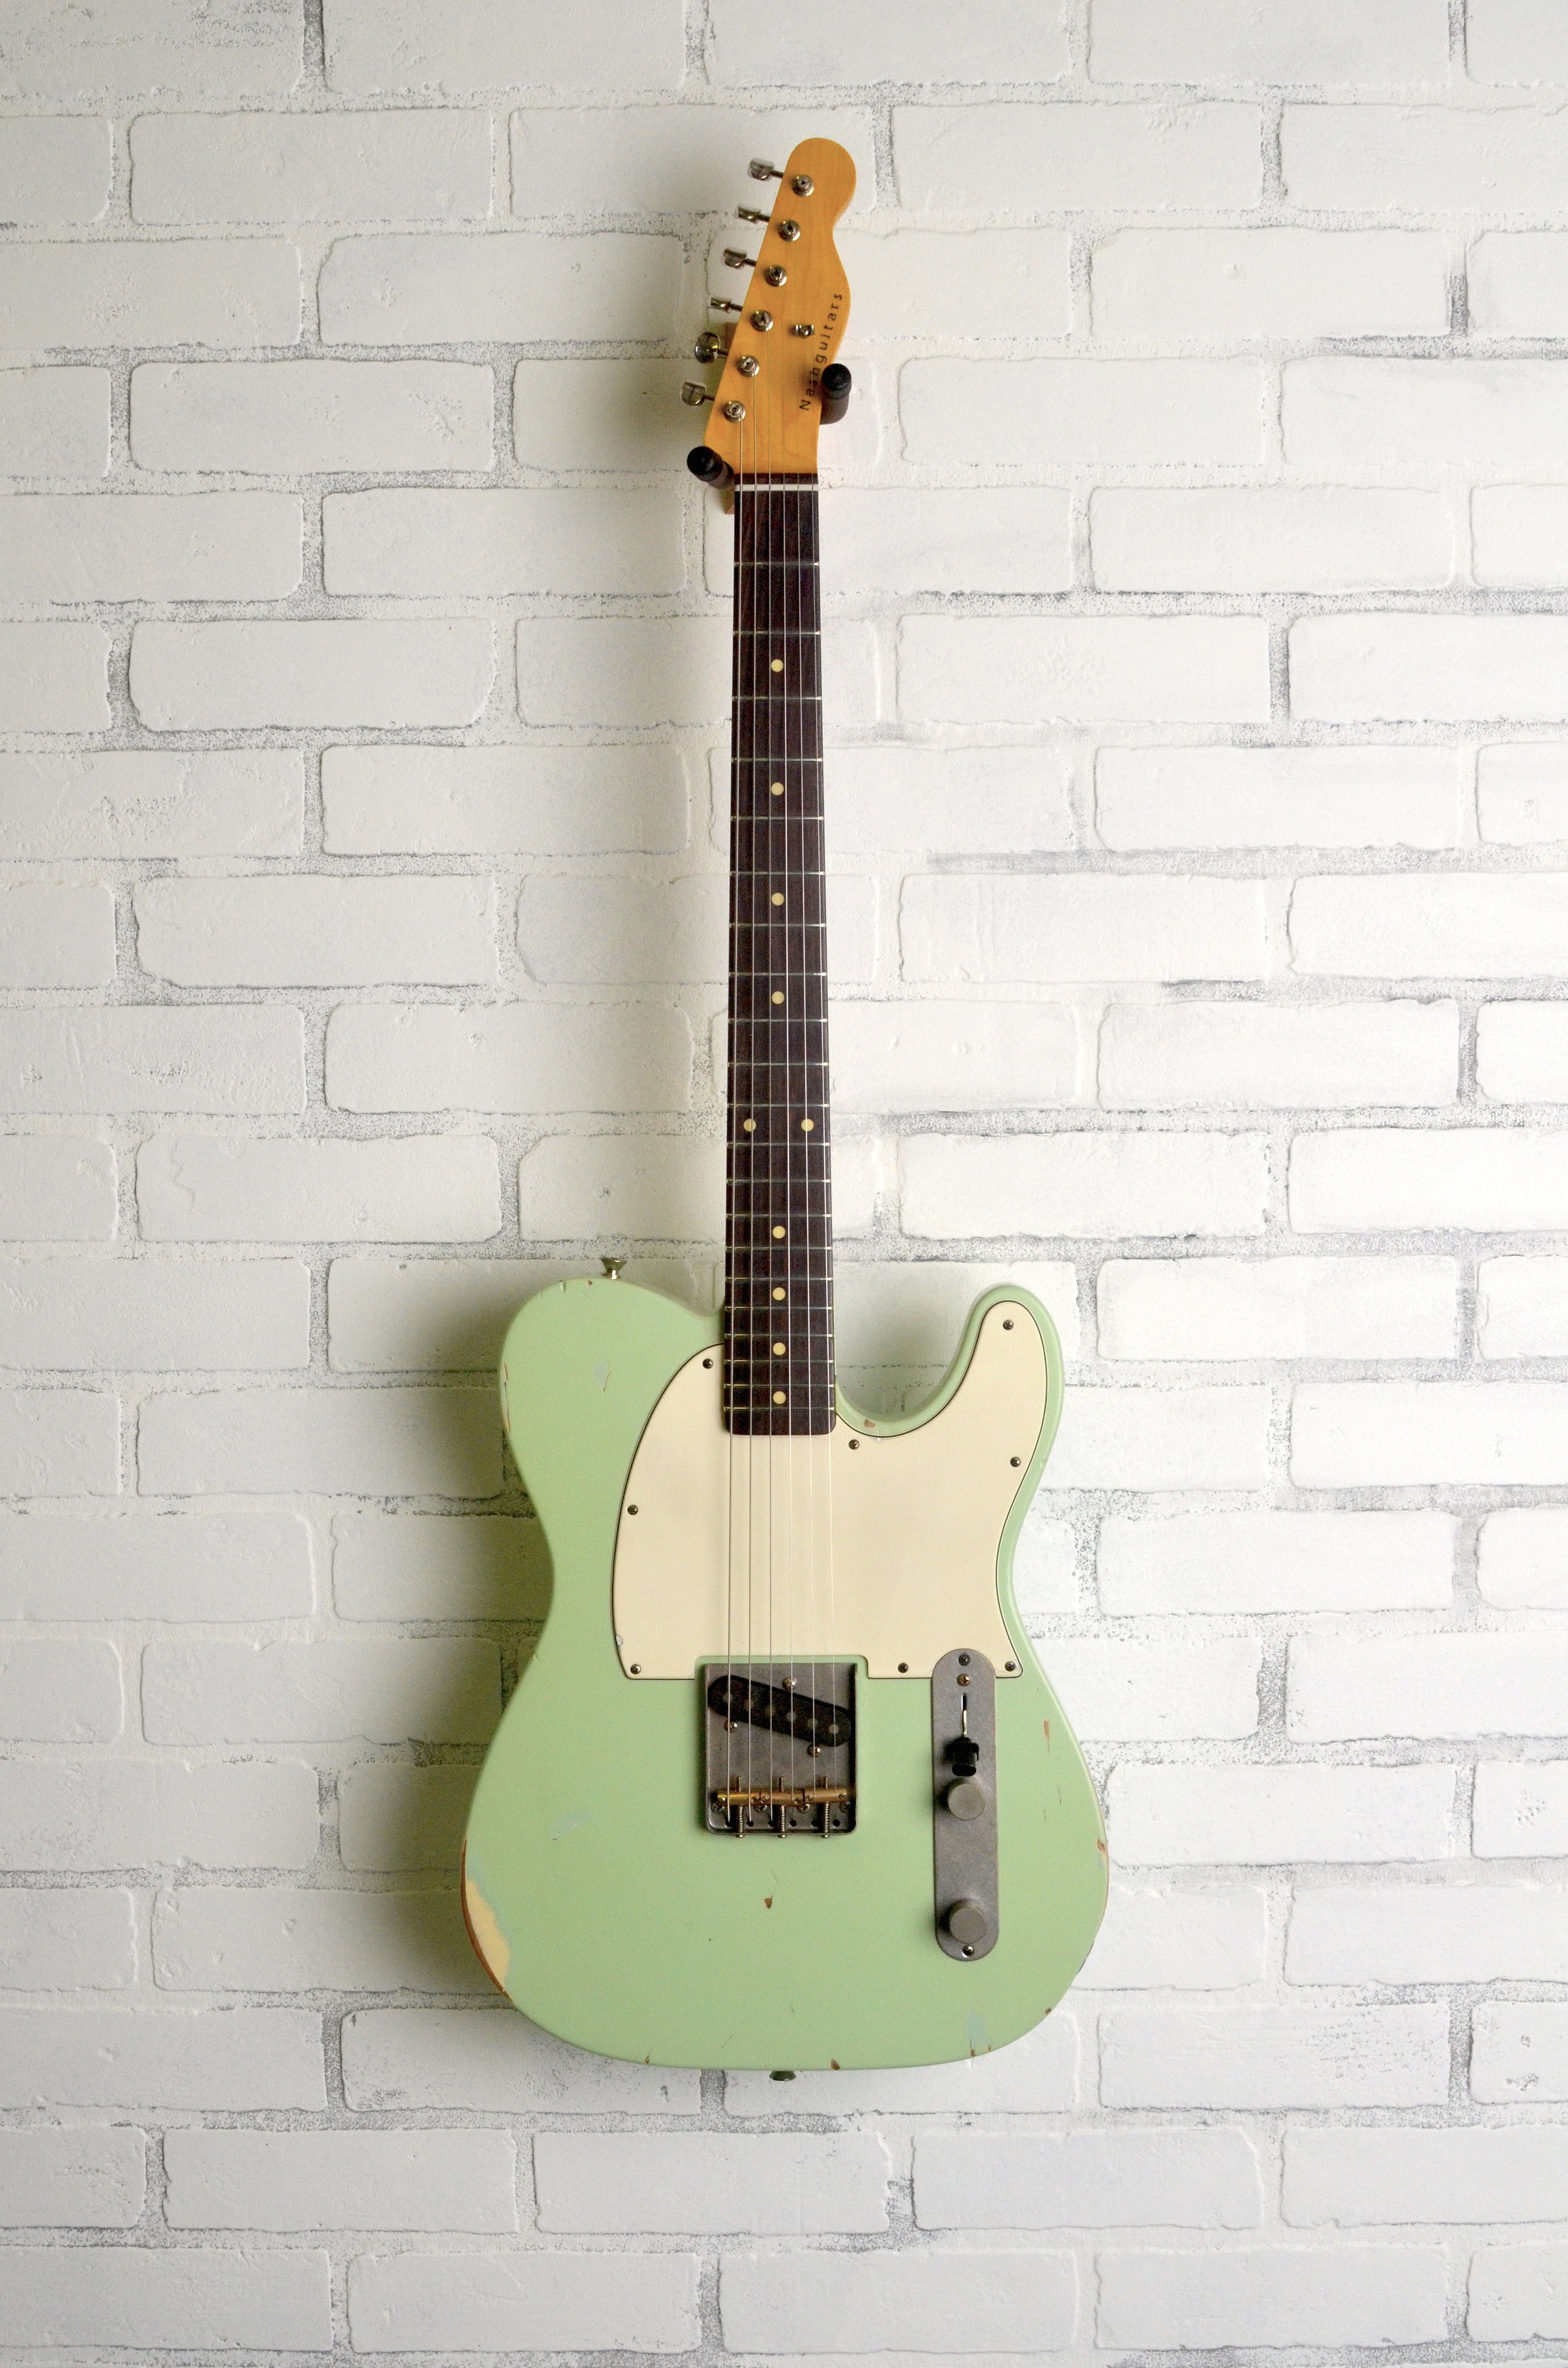 Surf Green  3-ply White Guard  Light Aging